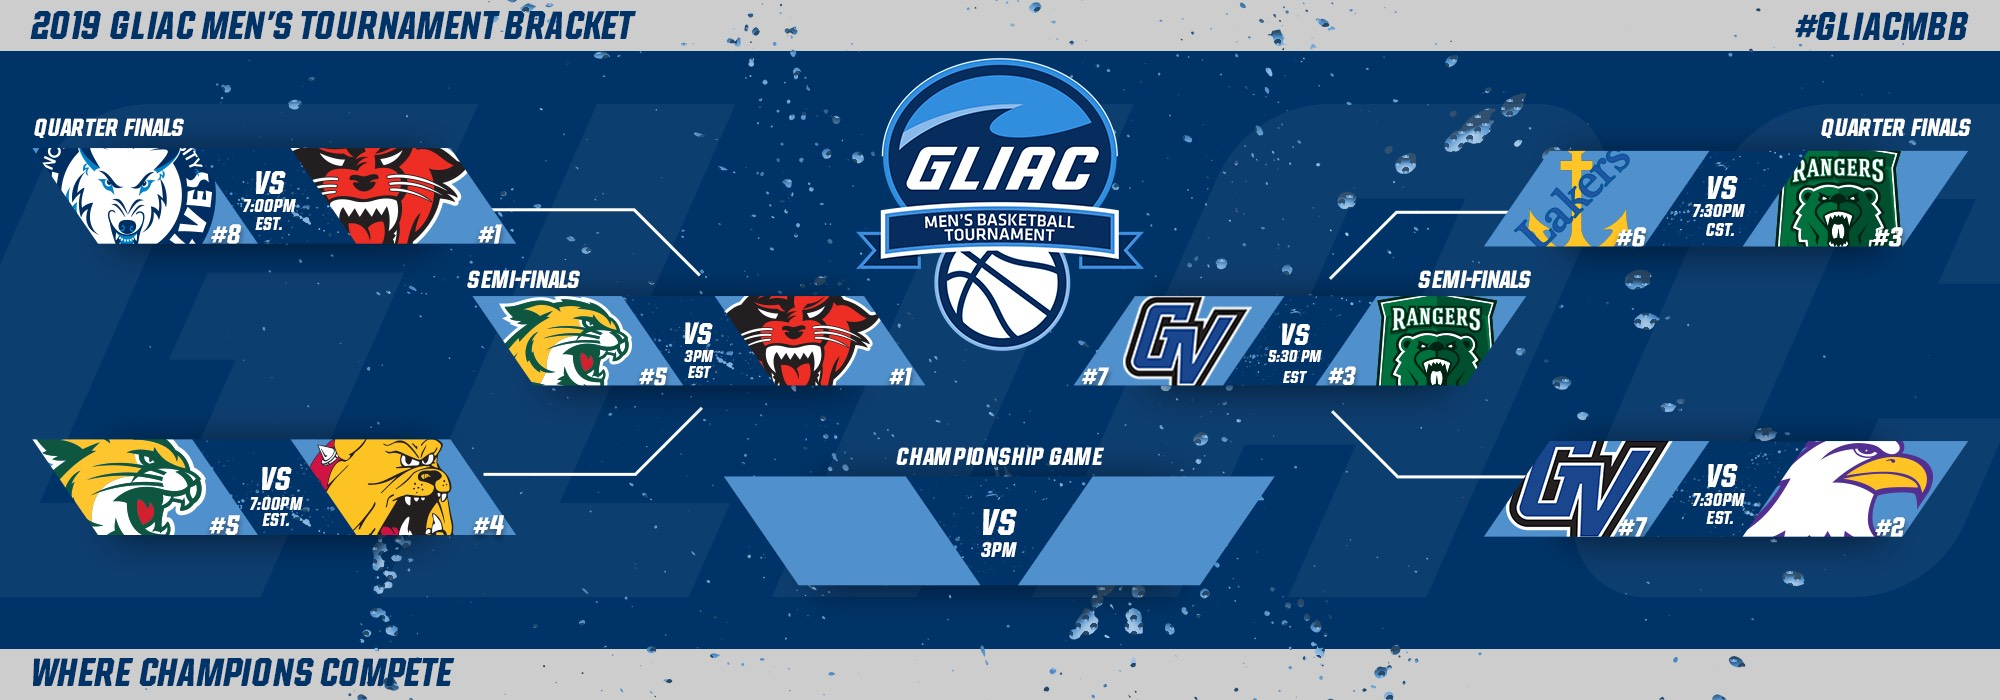 Closely-contested games expected during GLIAC men's basketball final four at Davenport